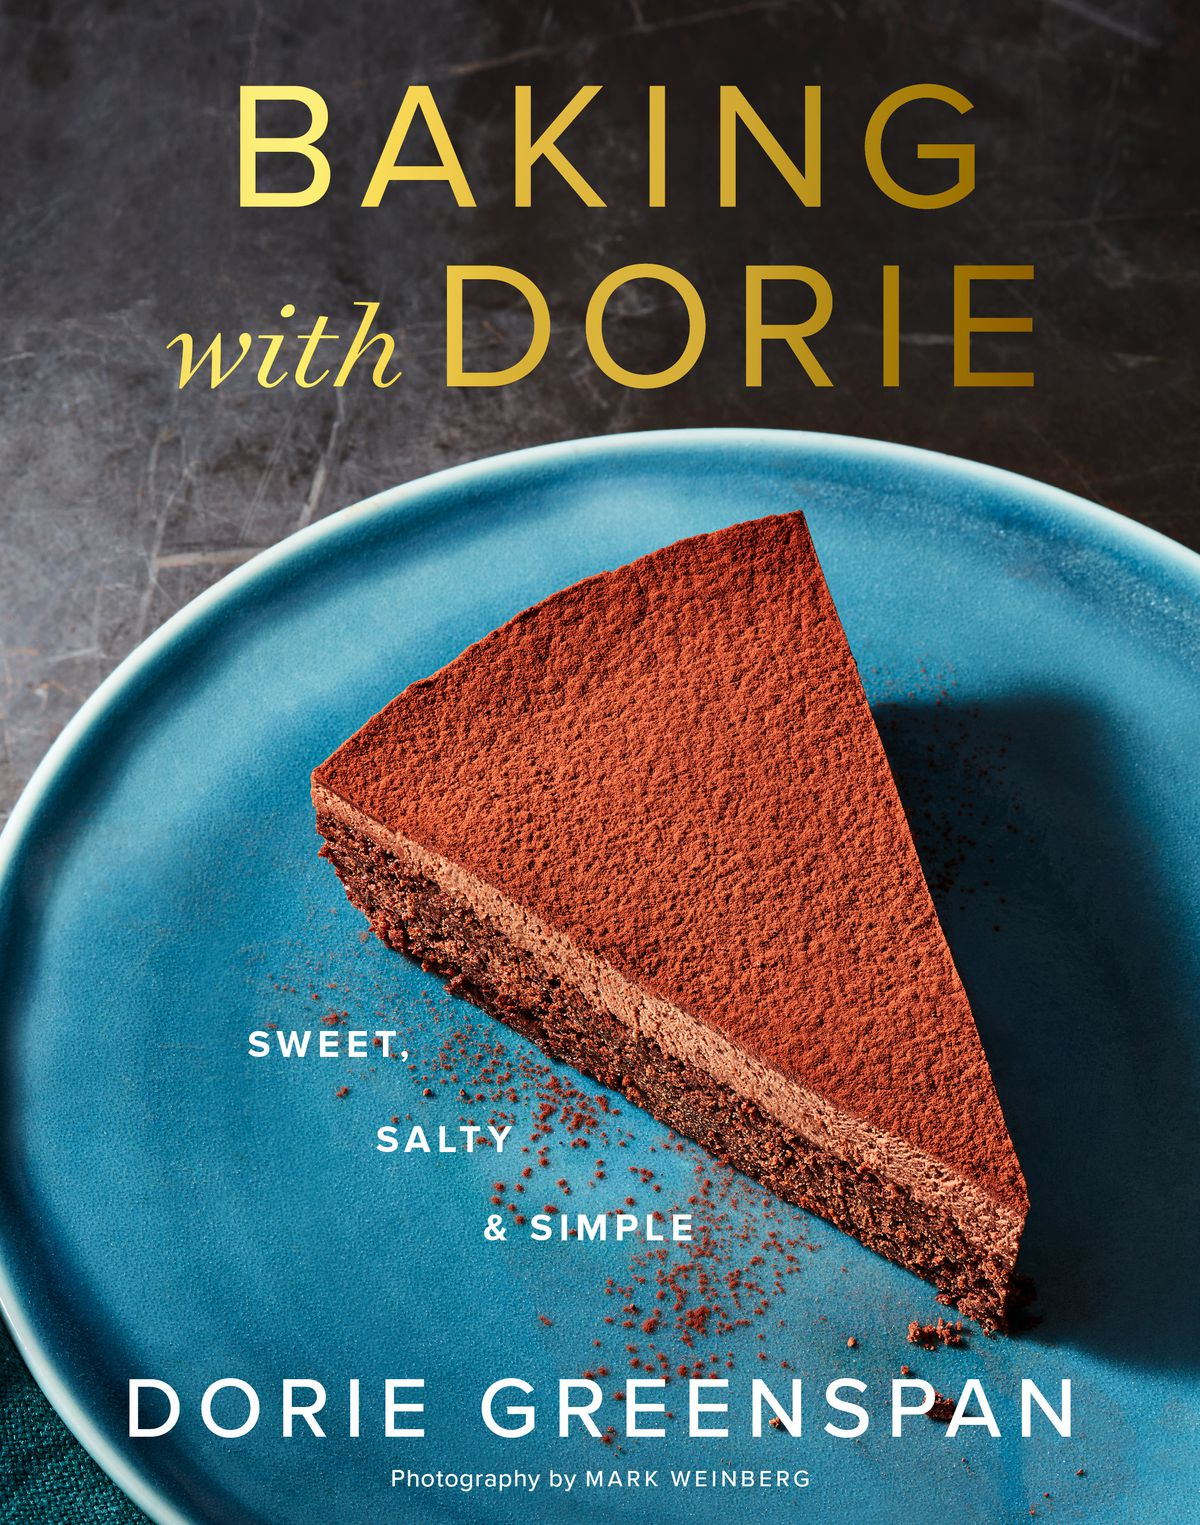 """A cookbook cover with a slice of chocolate cake and the title """"Baking With Dorie"""""""